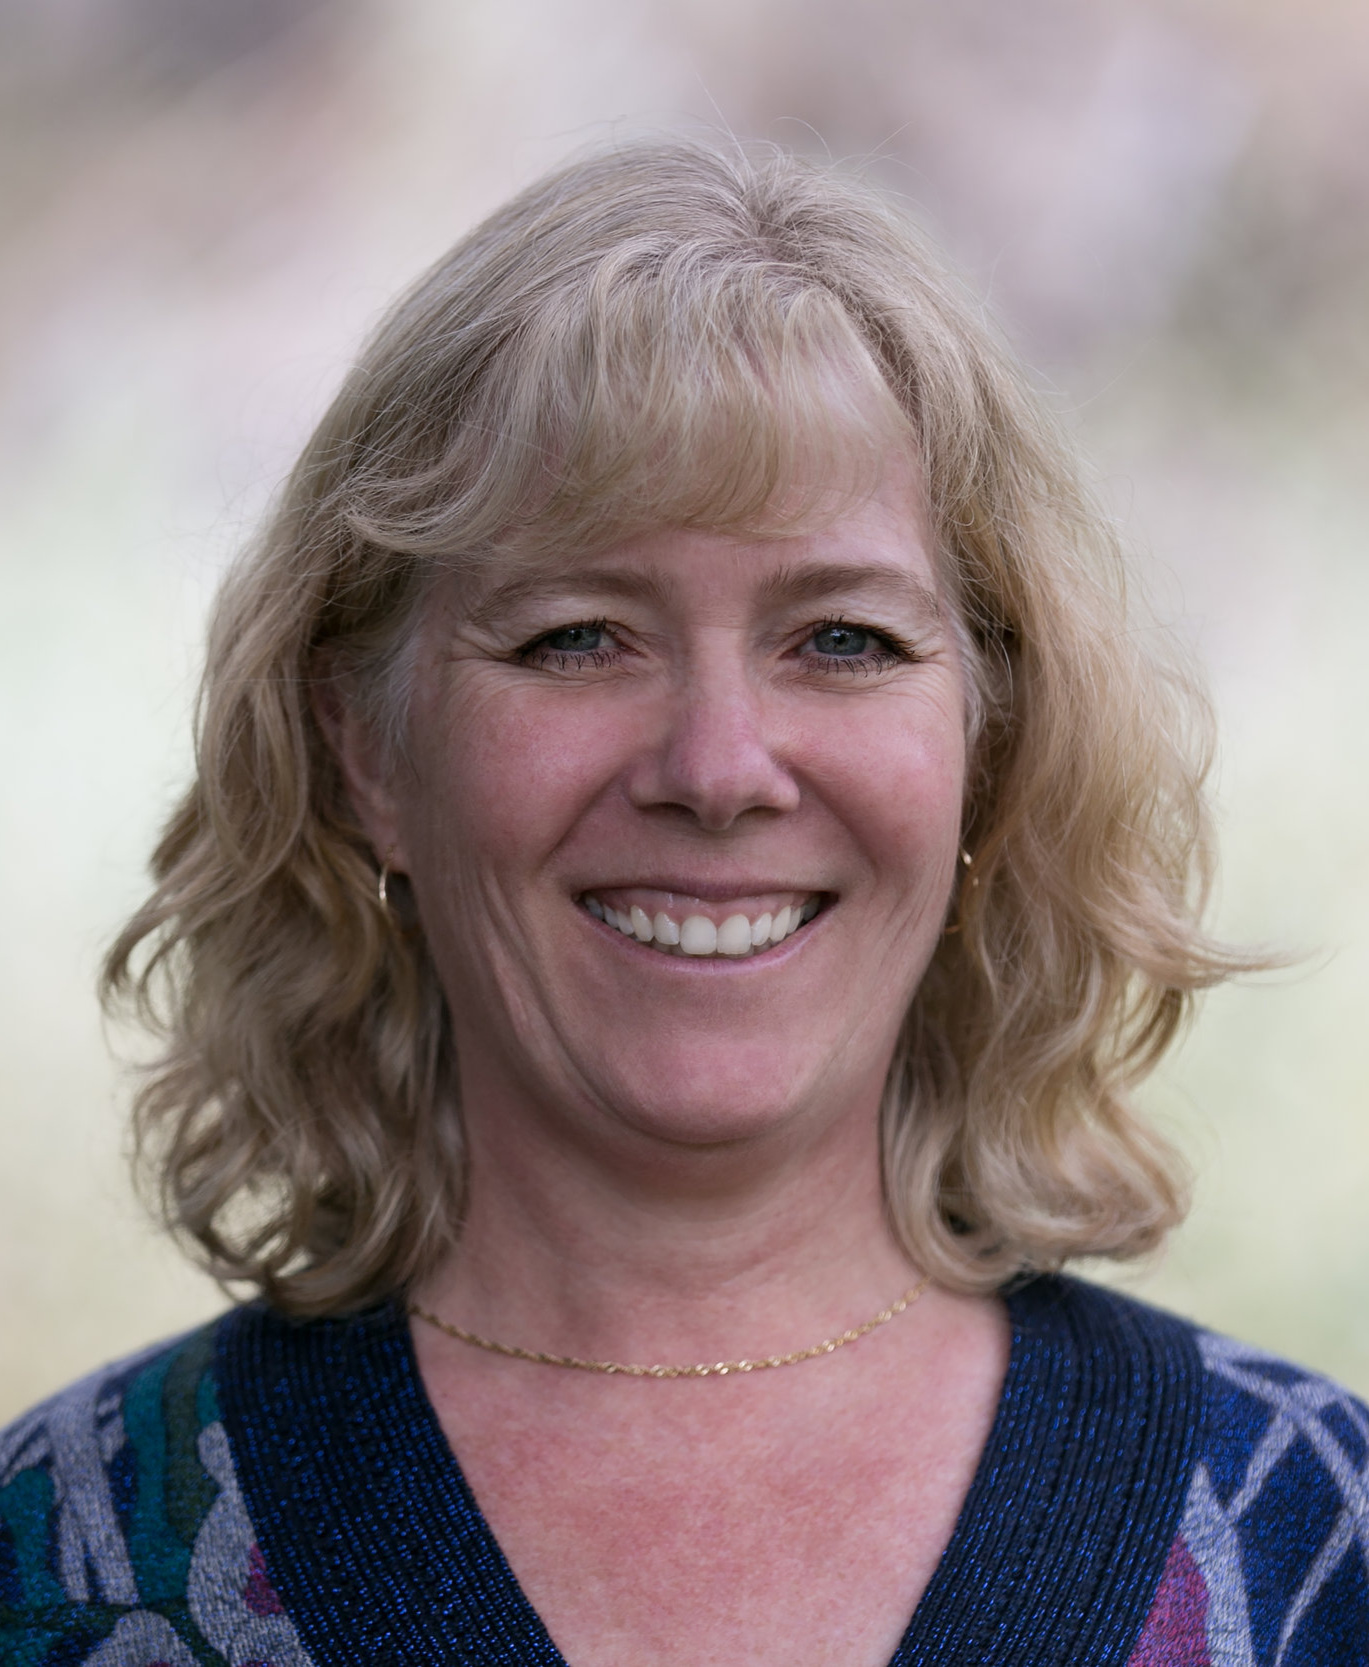 - KATHY DAVIDSONKathy Davidson is a physiotherapist and an independent consultant. She is currently one of the Practice Advisors at CPTBC, and also acts as the Executive Director of Physiotherapy Education Accreditation Canada (PEAC)